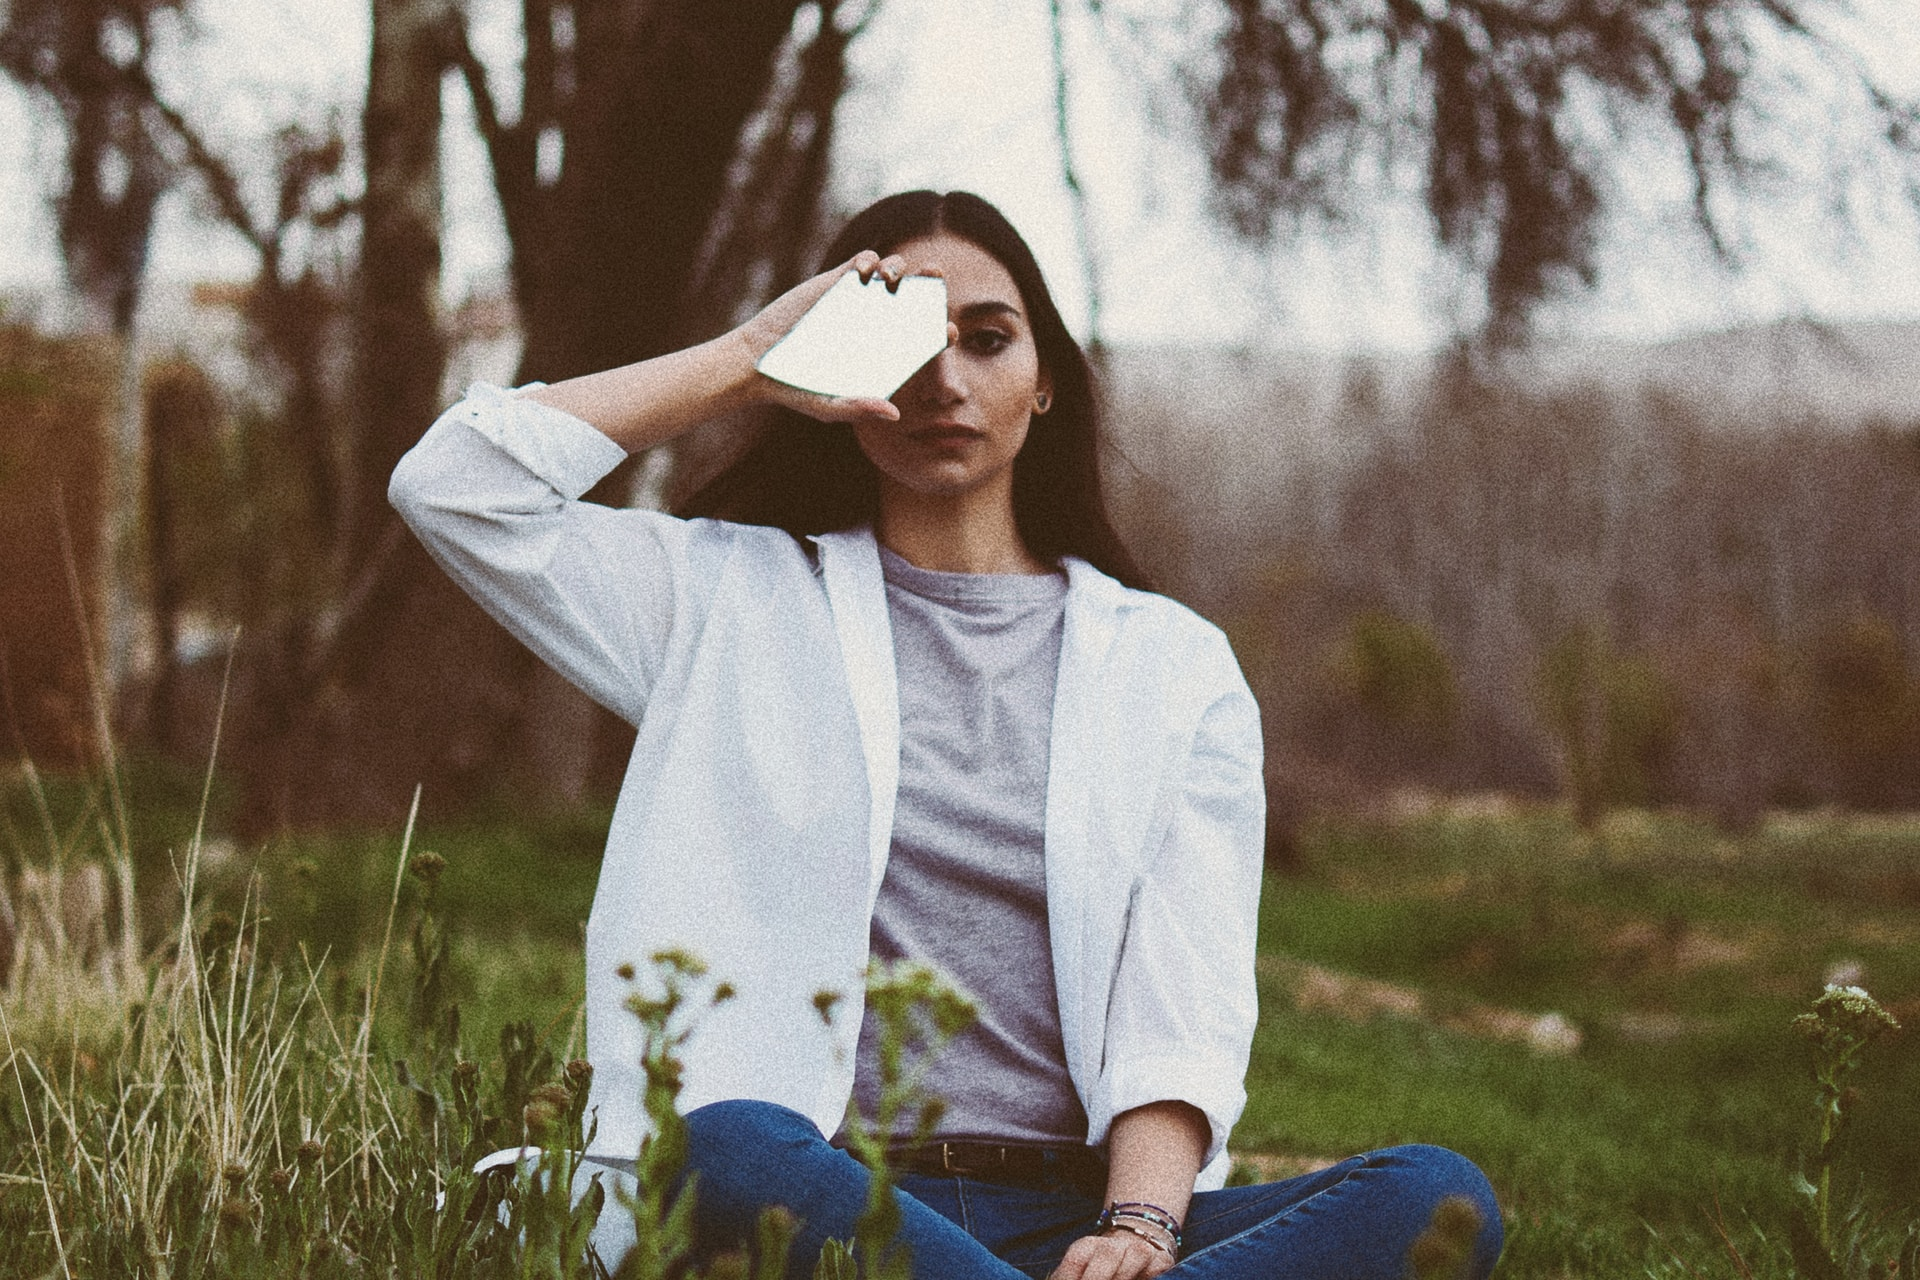 woman in white jacket sitting on grass